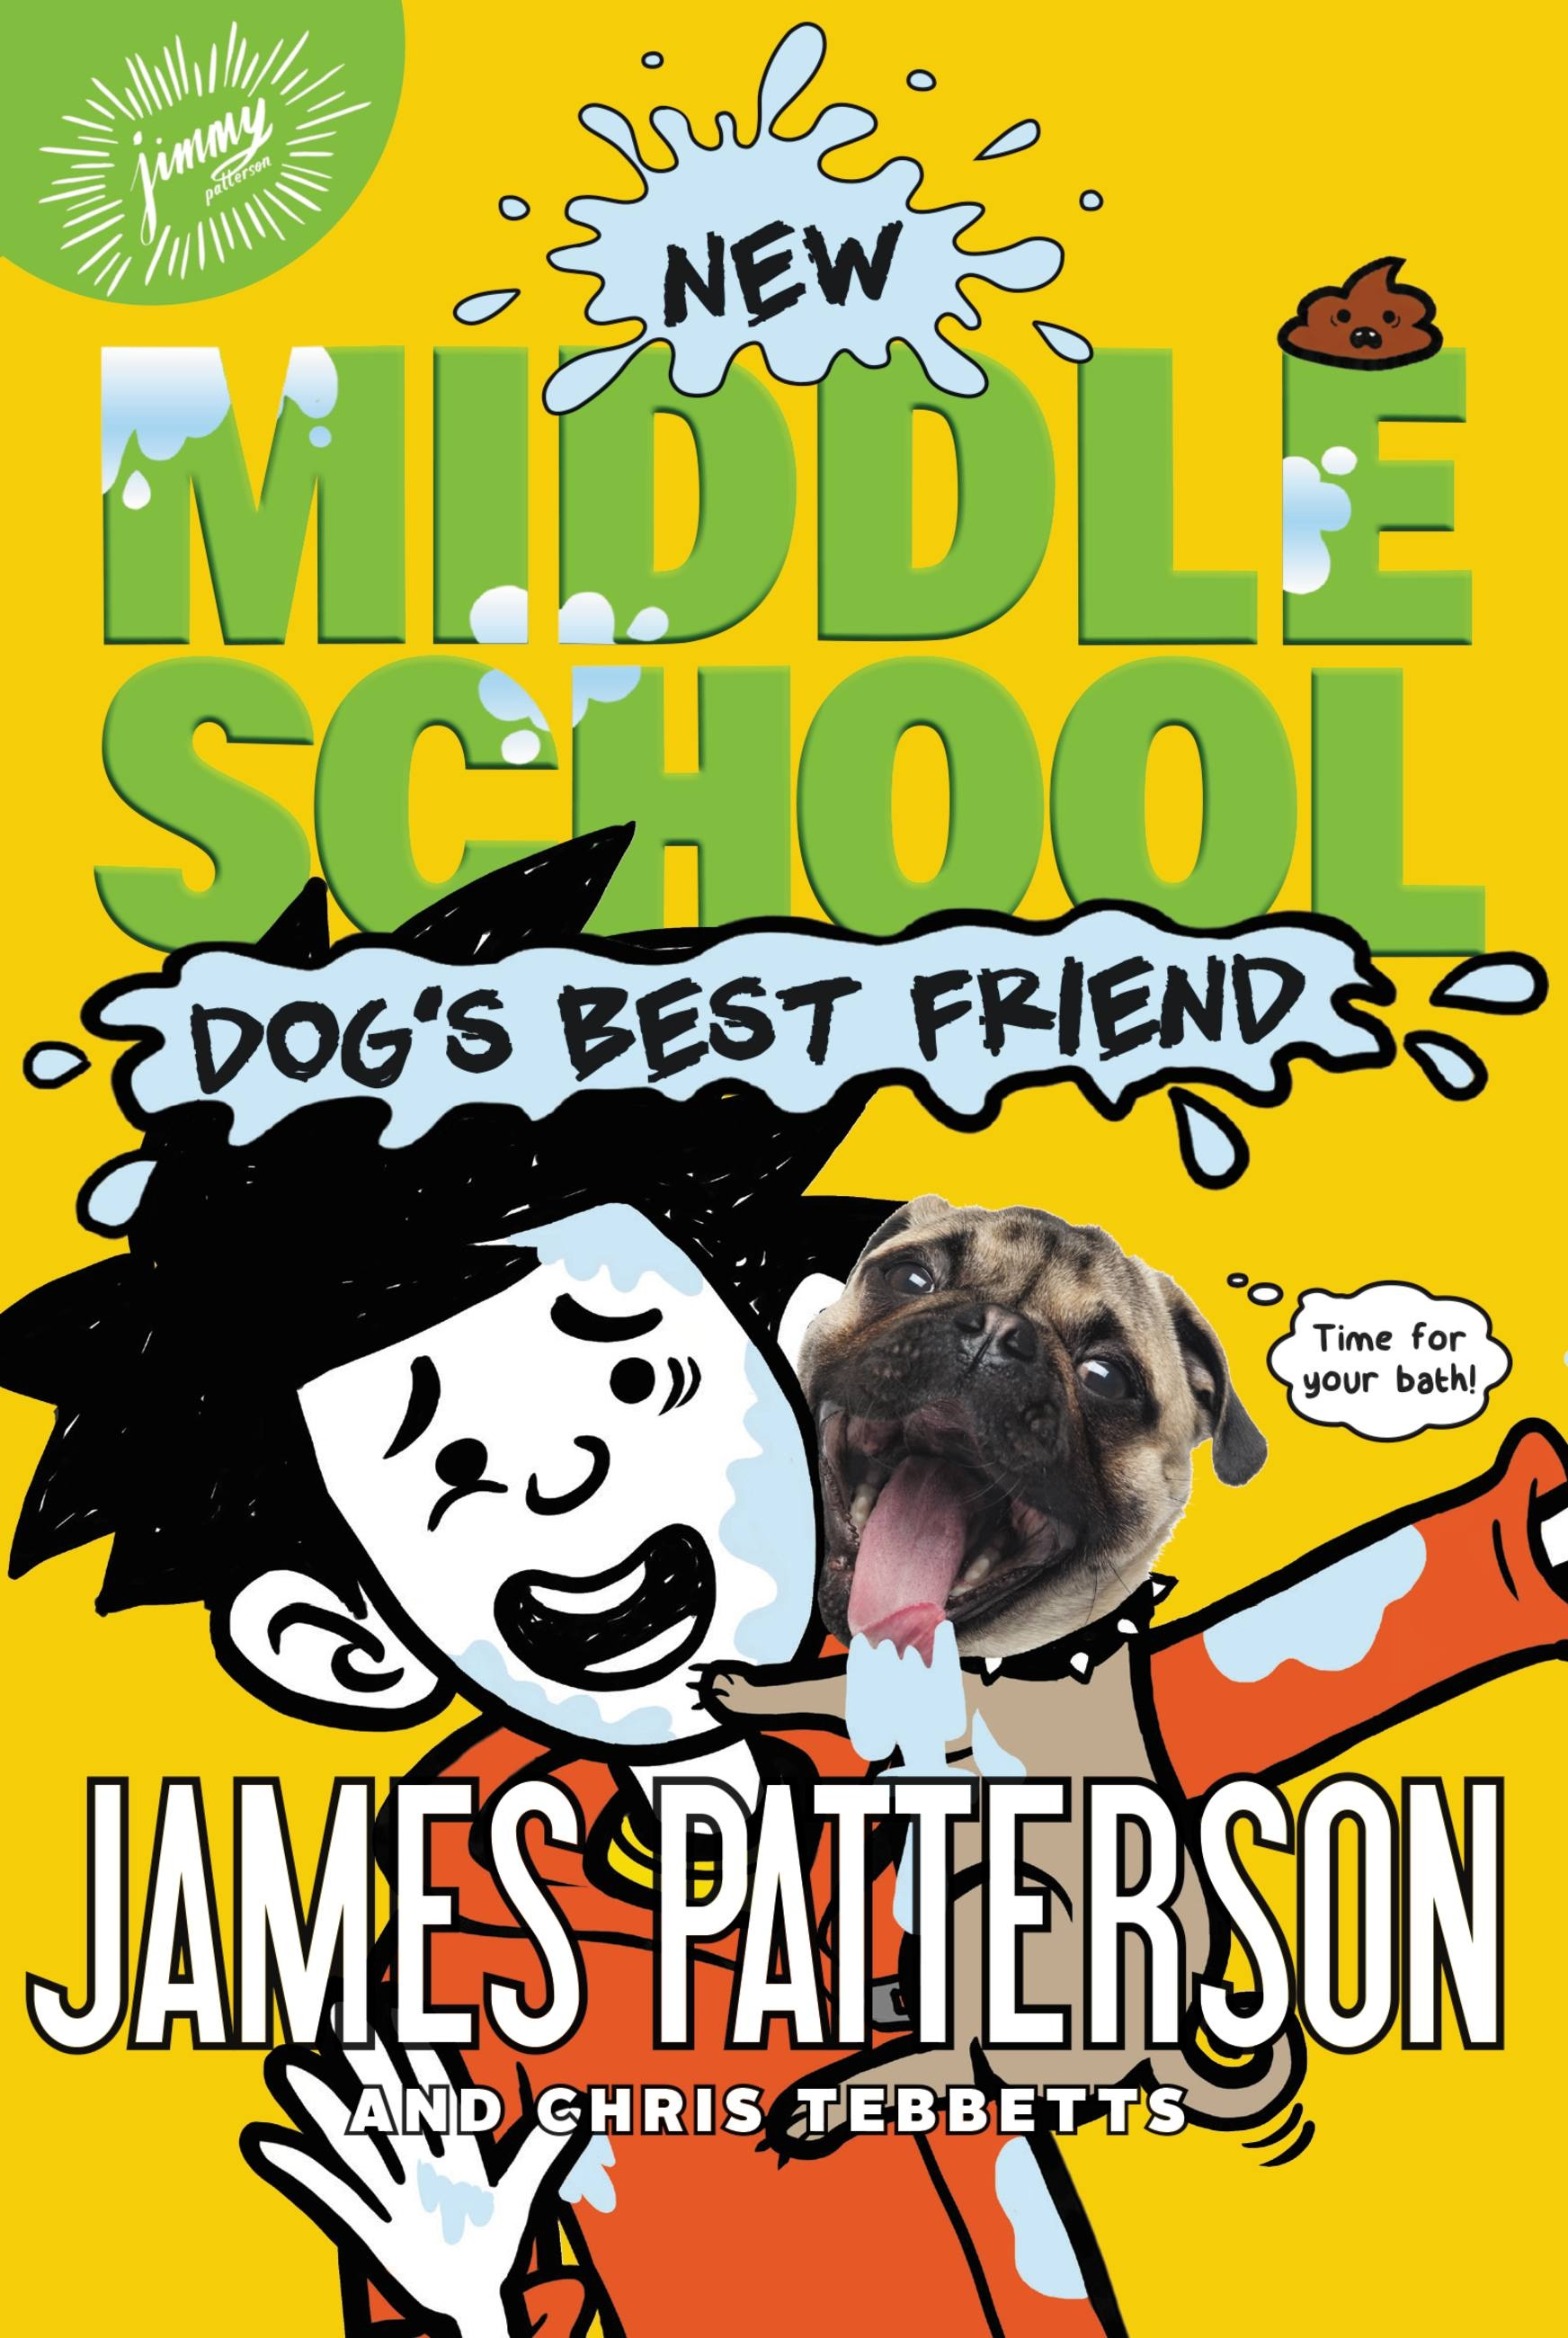 Book Cover School Quotes ~ Middle school dog s best friend by james patterson